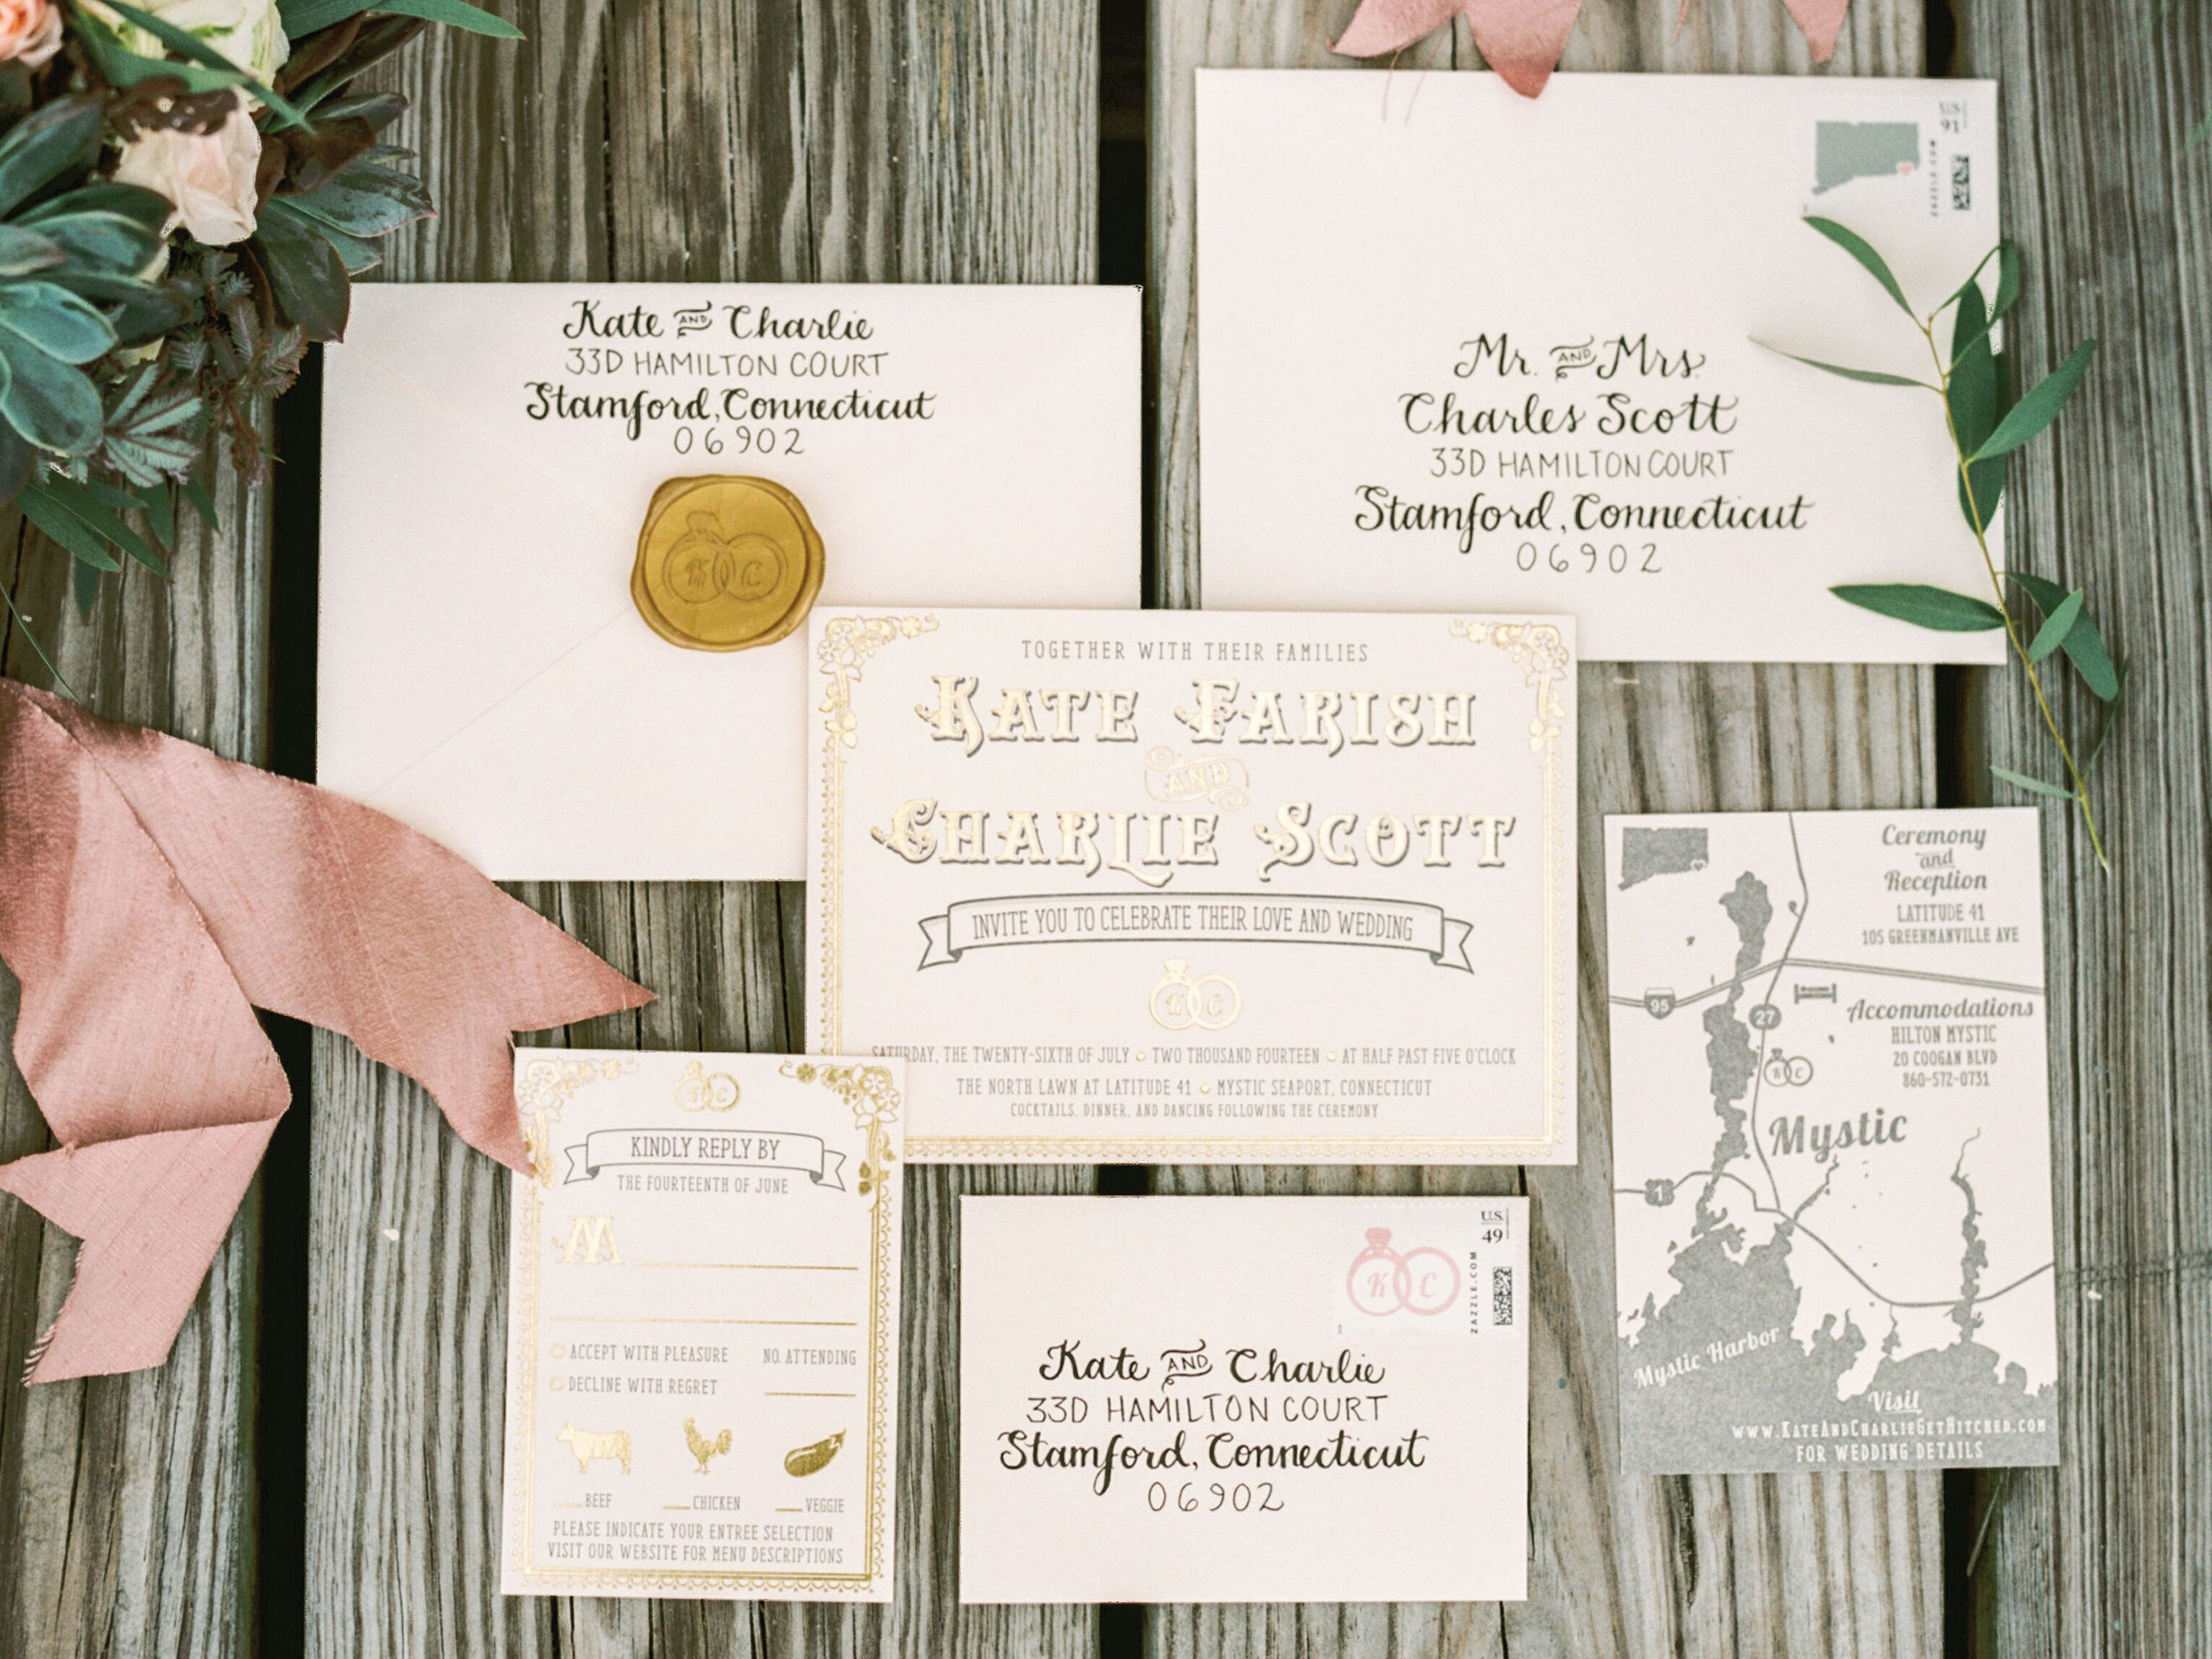 Wedding Invitations: Aplete Checklist  Wedding Planning  Wedding  Invitations + Stationery